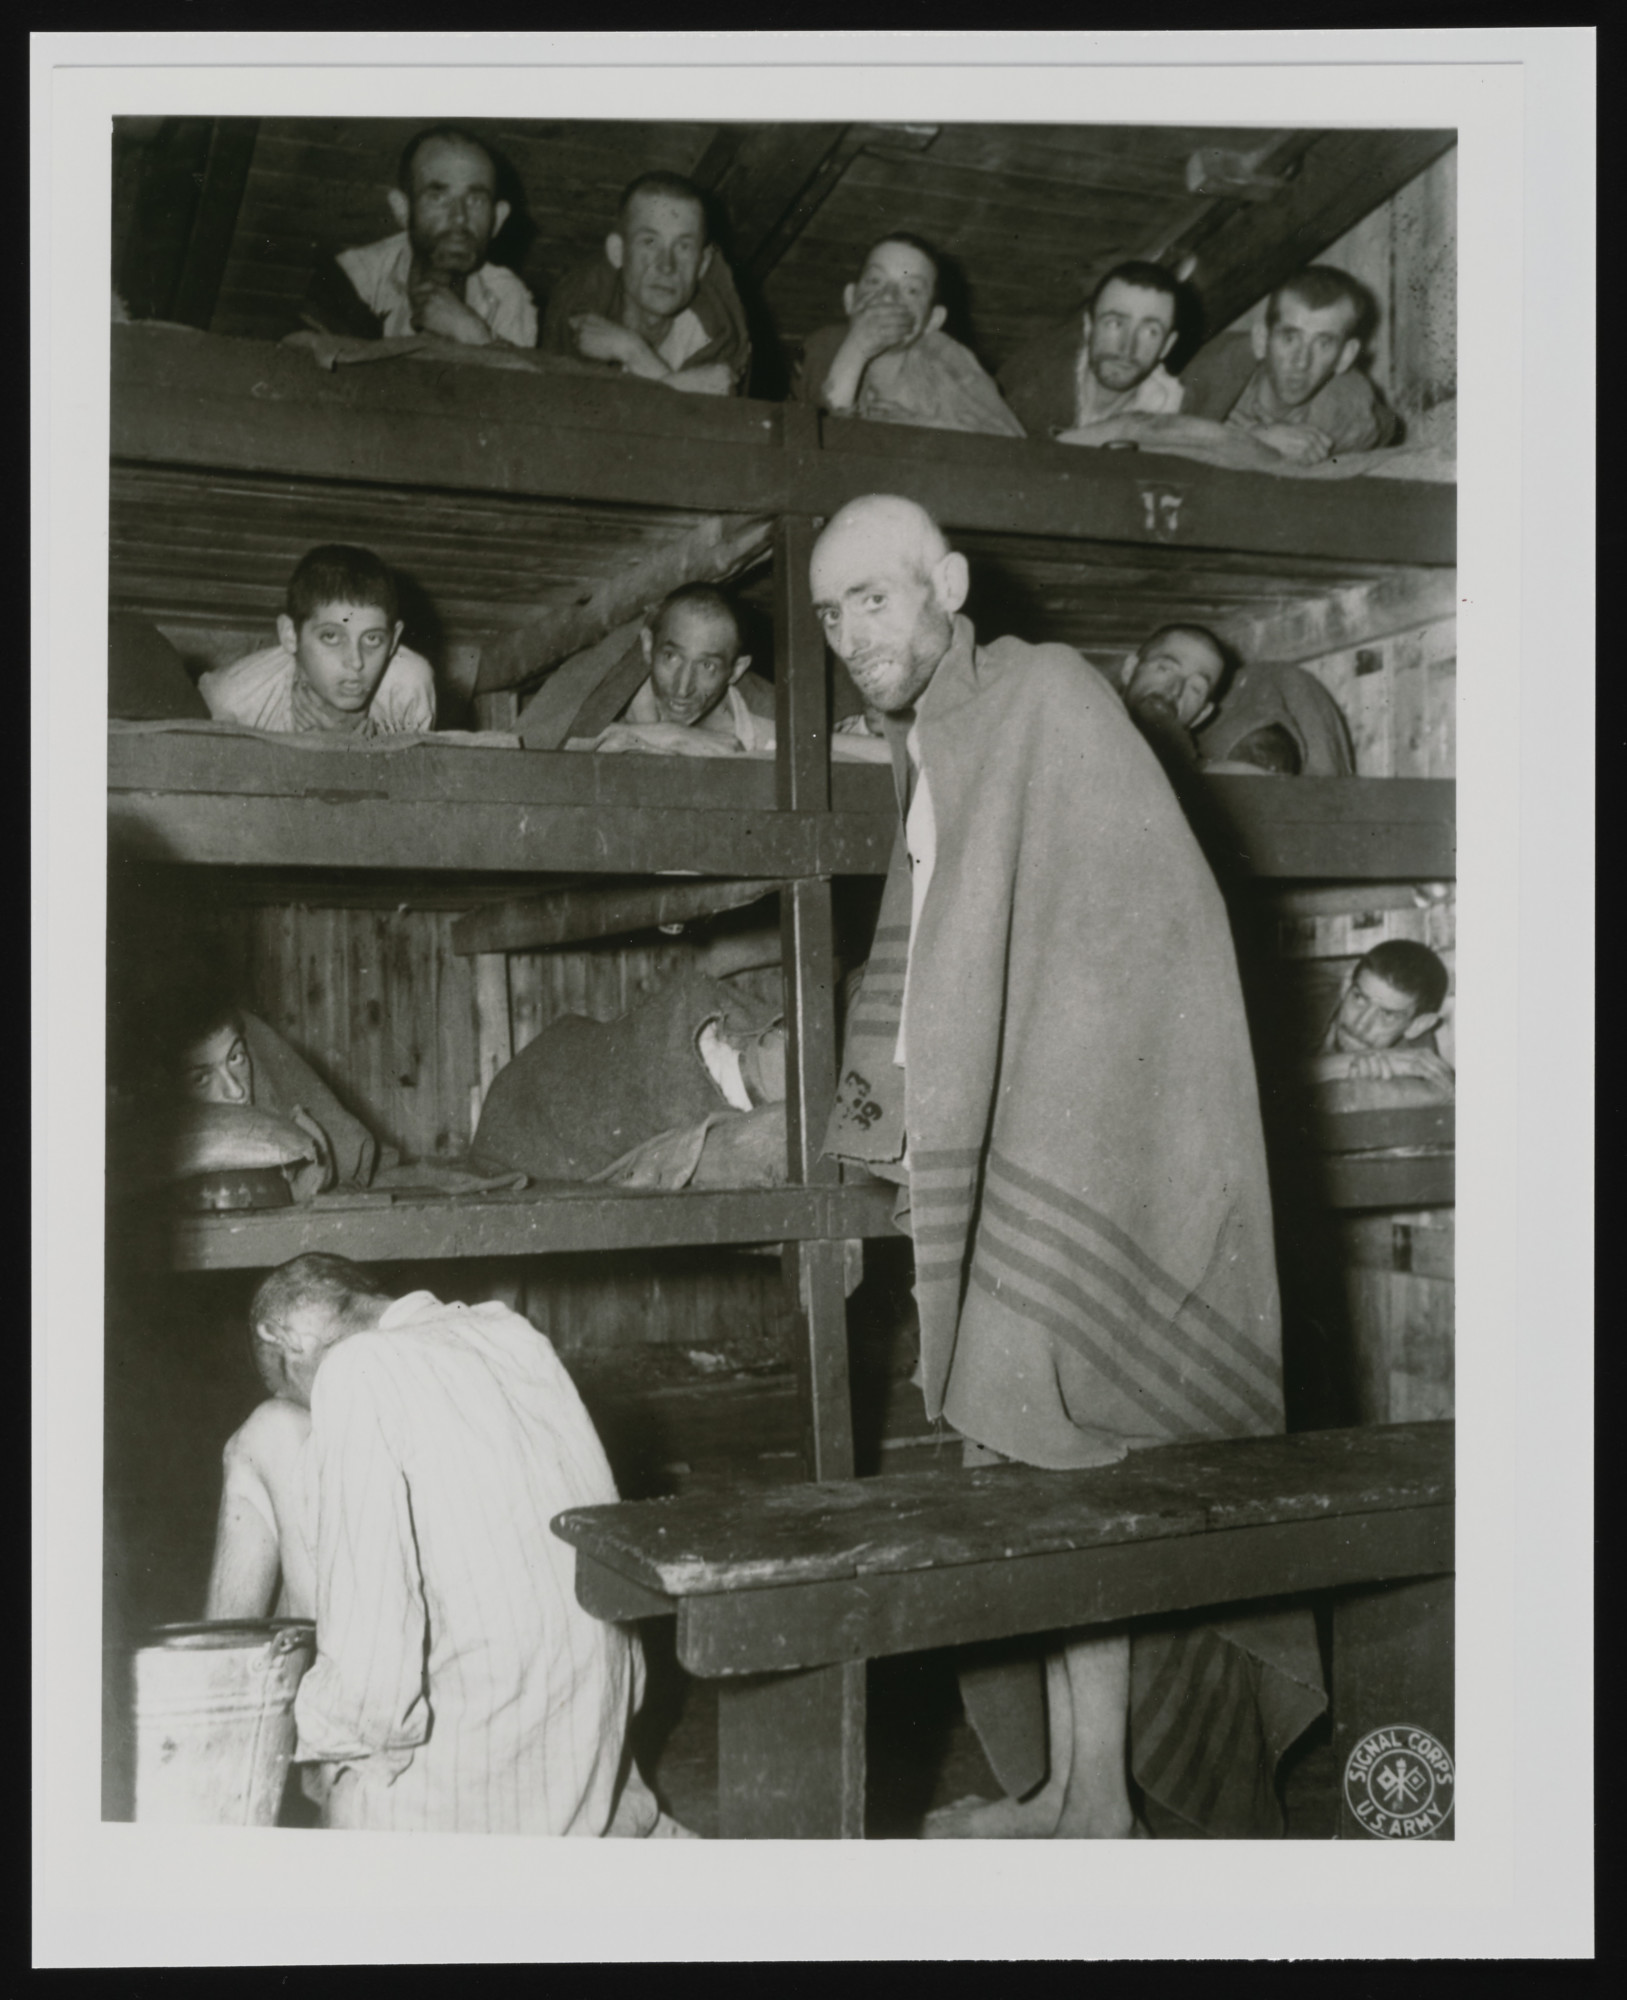 """Survivors lie in multi-tiered bunks in a barracks in the newly liberated Buchenwald concentration camp.  The original caption reads, """"Men and young boys showing the way and manner in which they slept every night for the last three years at the camp near Weimar Germany."""" [sic]  According to the Signal Corps caption, the photo was taken on April 14, 1945."""